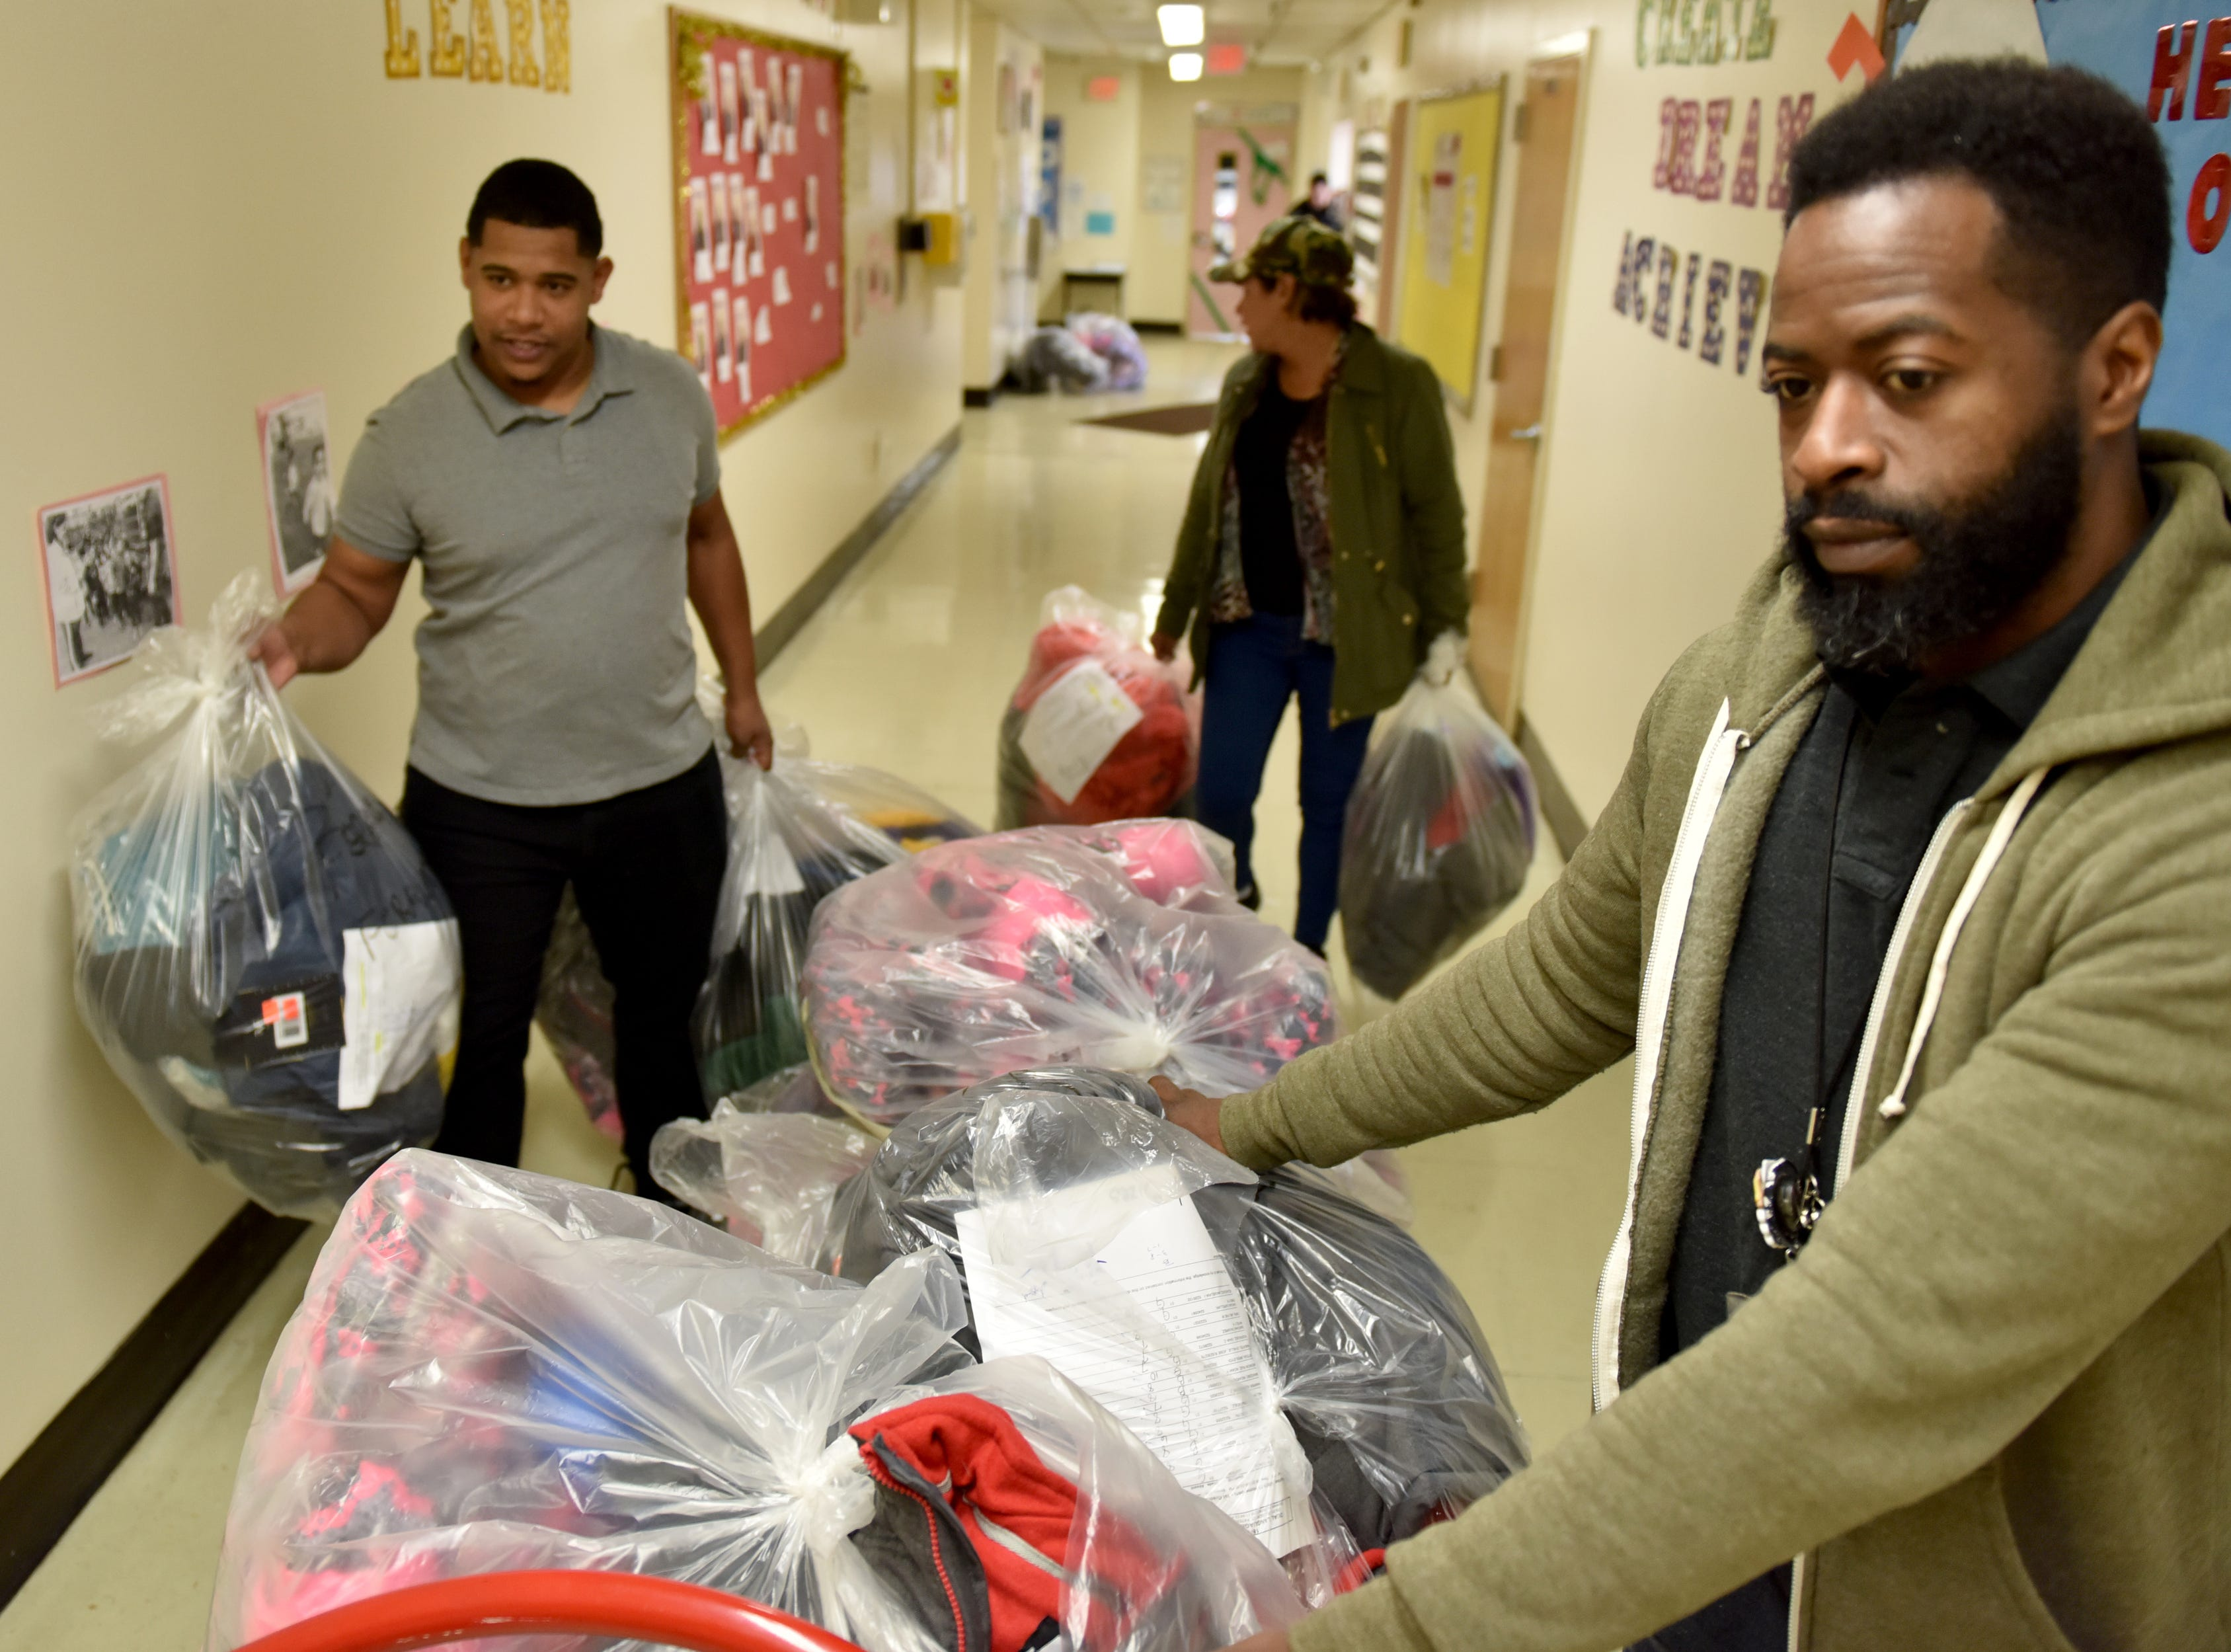 Jarrod Rogers, Jonathan Cruz and Marlene Garcia move the bags of new coats through the school. The Paterson Rotary held their eighth annual Christmas Coat Drive in Paterson, on Monday morning December 17, 2018. The club donated coats to all the students at Edward W. Kilpatrick Elementary School. The Rotary Club raised funds from its members and the community to buy 380 coats for the students.